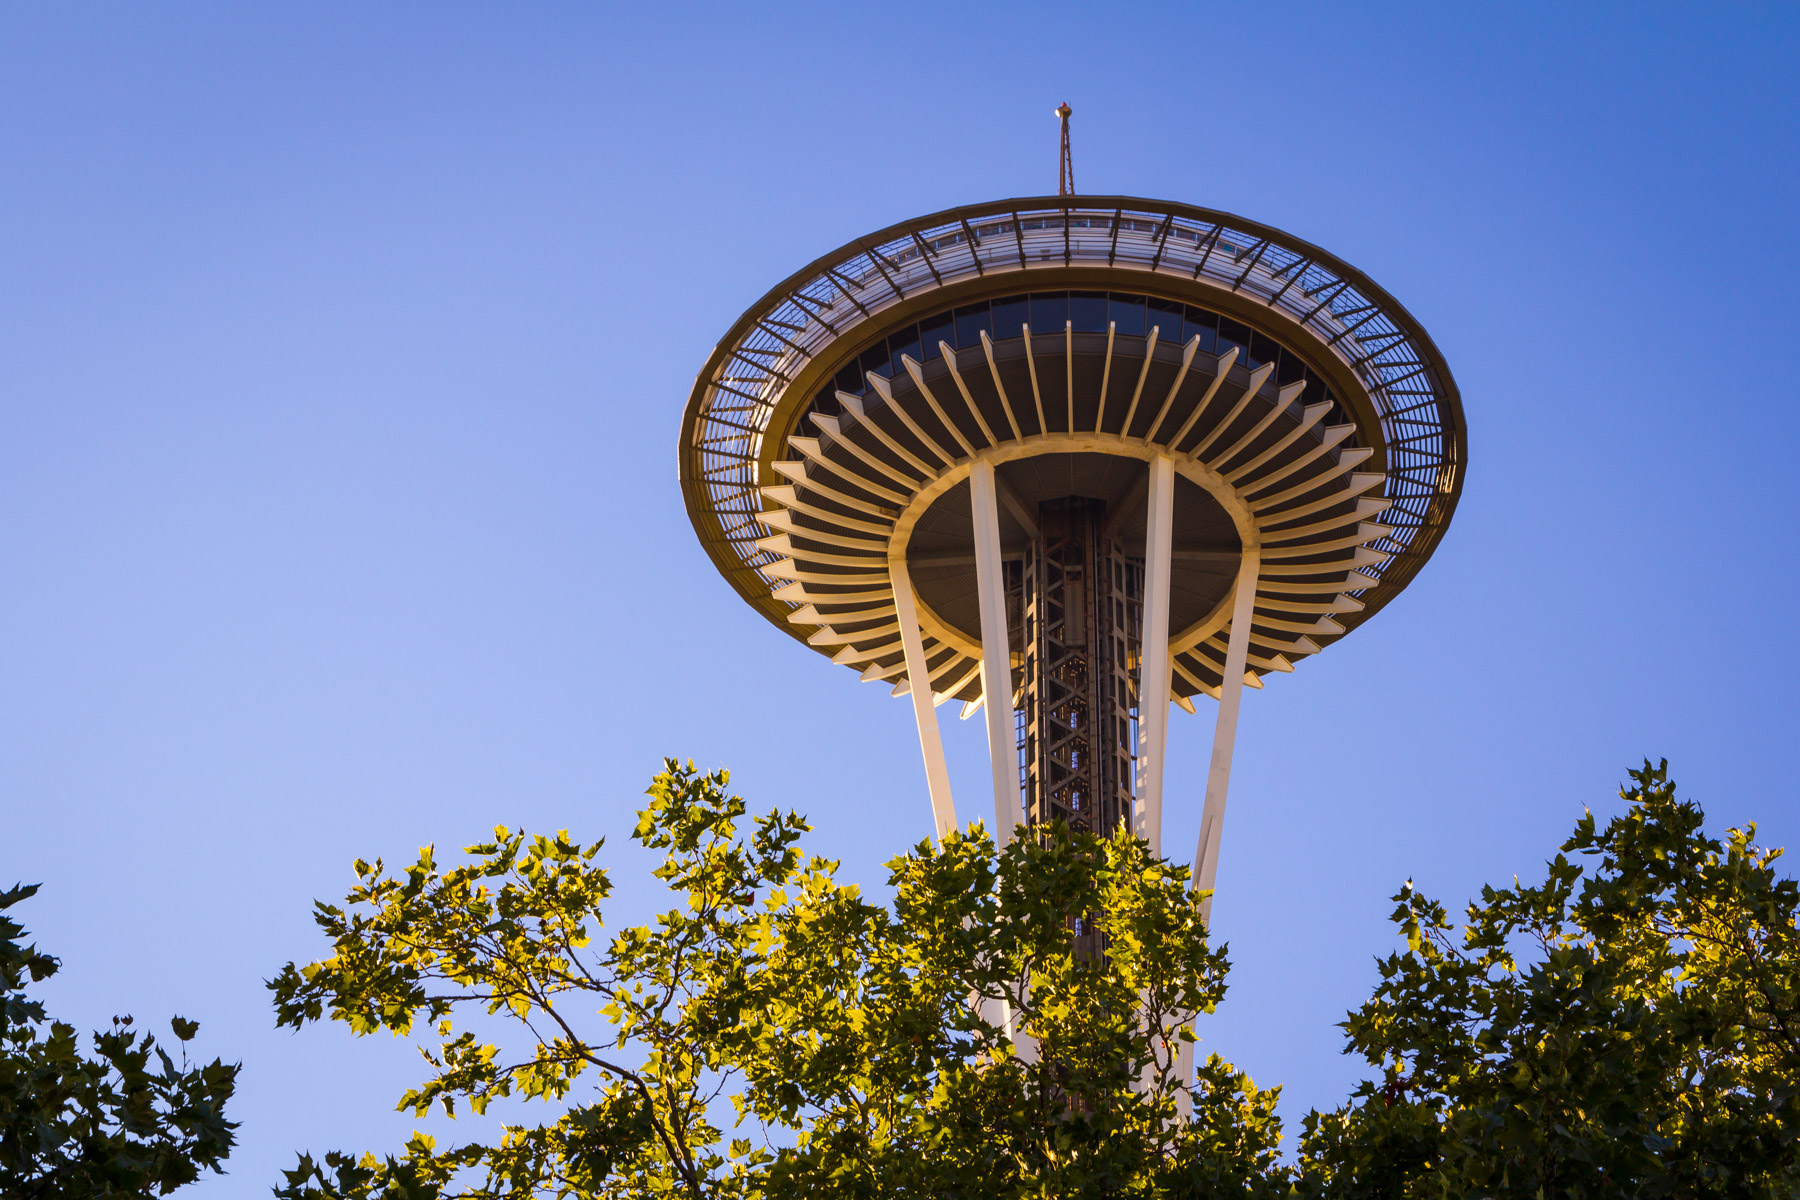 Seattle's Space Needle—built for the 1962 World's Fair—rises above the surrounding trees at the Seattle Center.